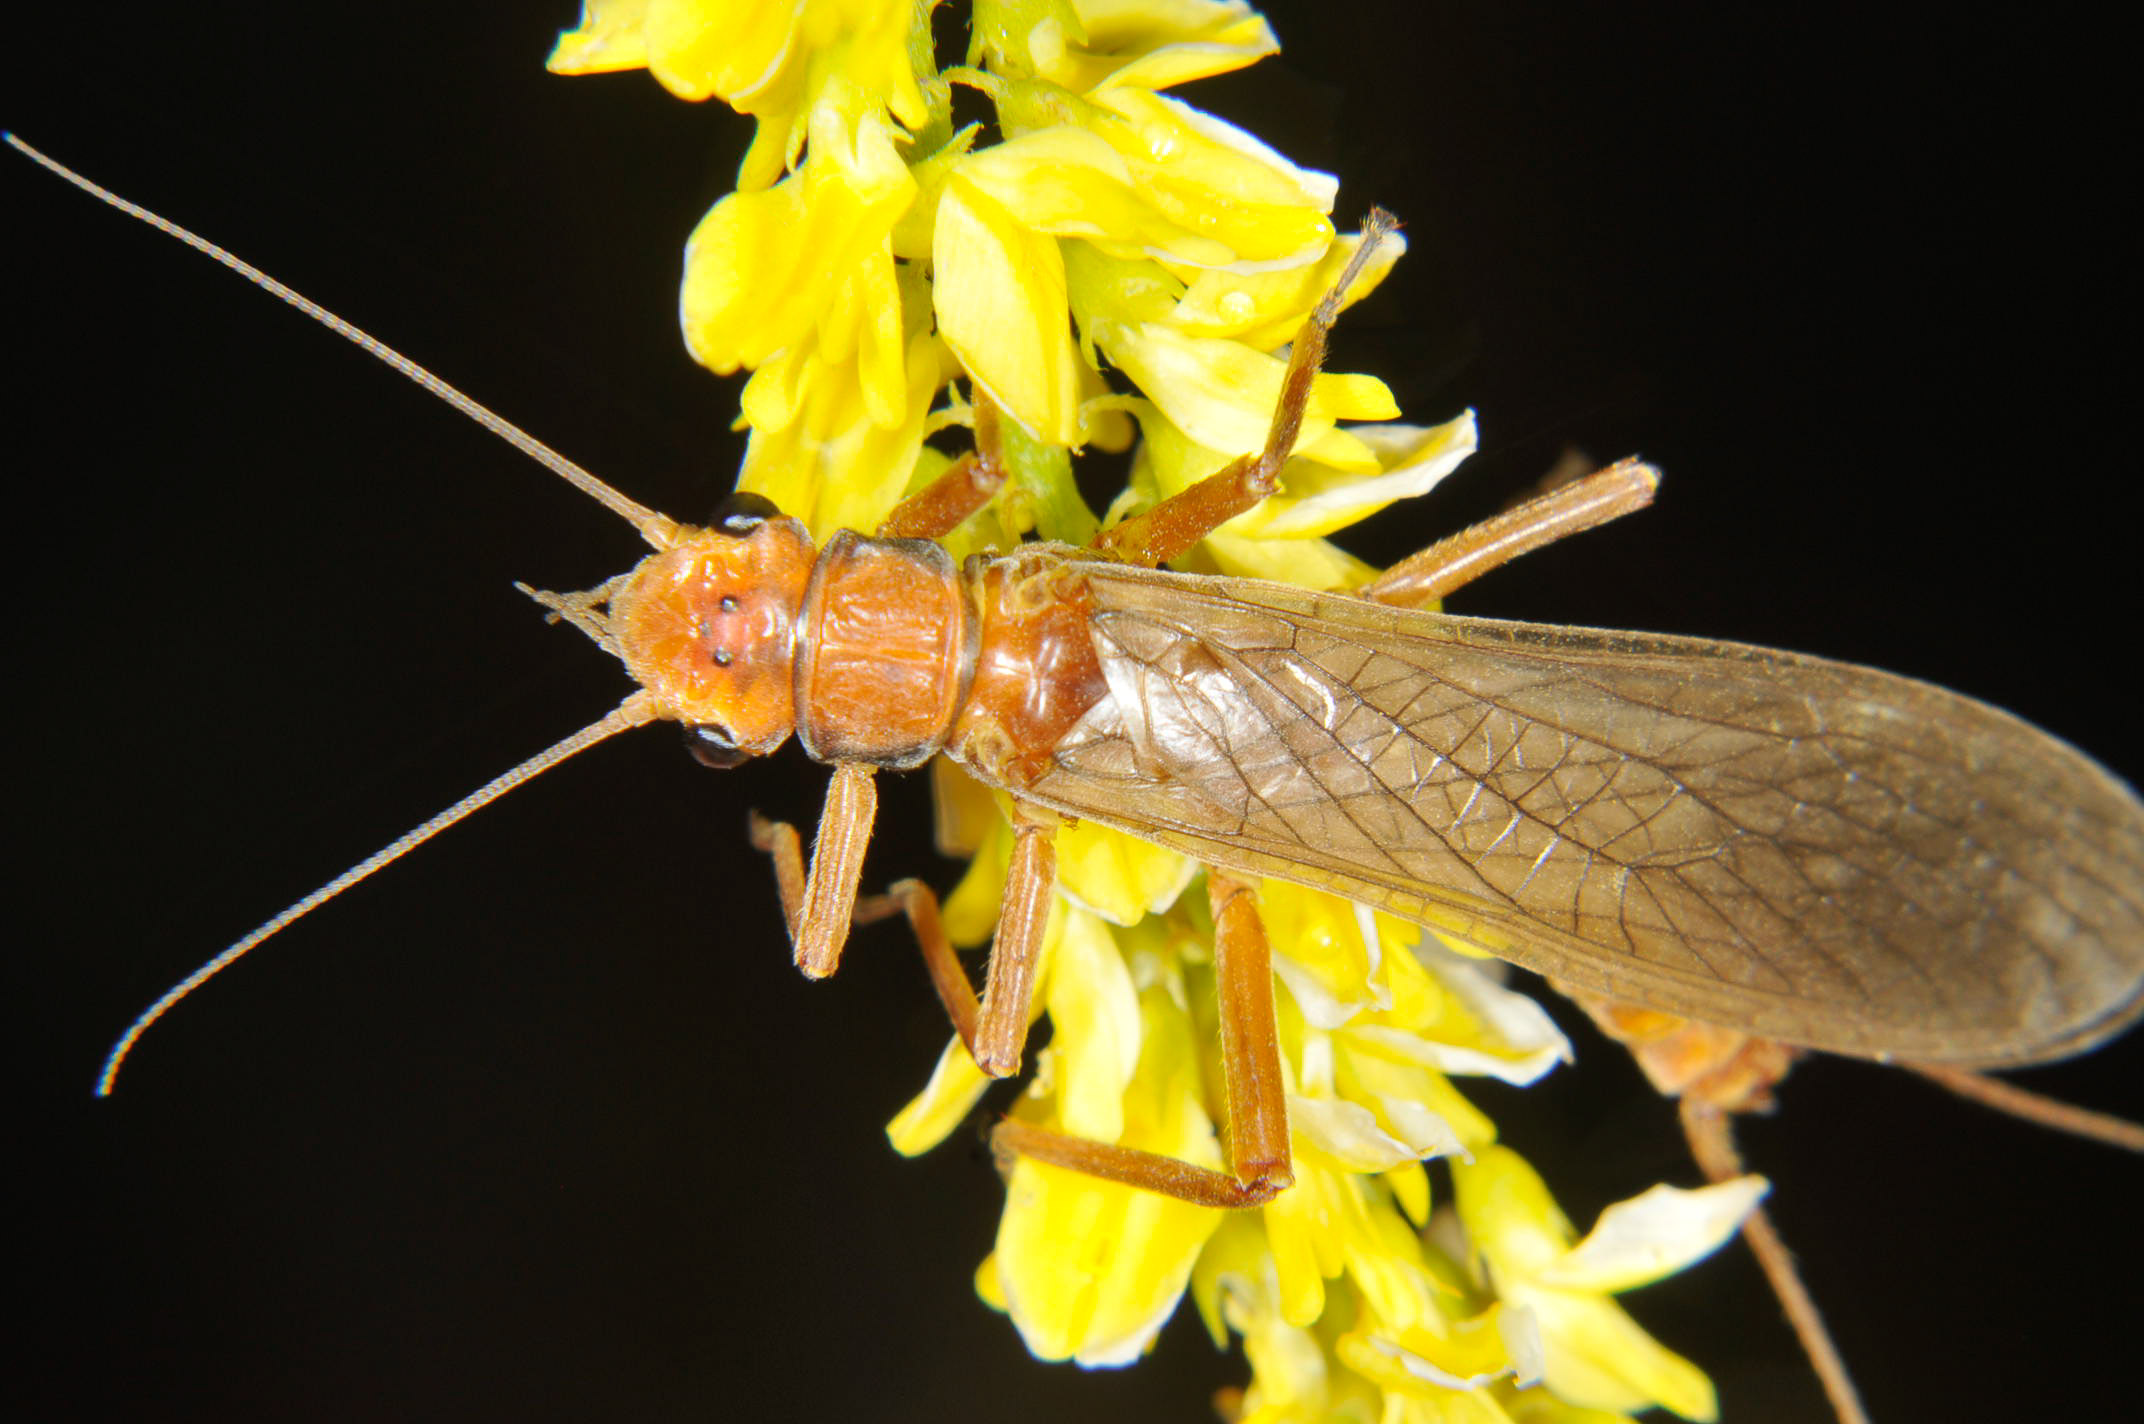 Male Hesperoperla pacifica (Golden Stone) Stonefly Adult from the Grande Rhonde River in Washington